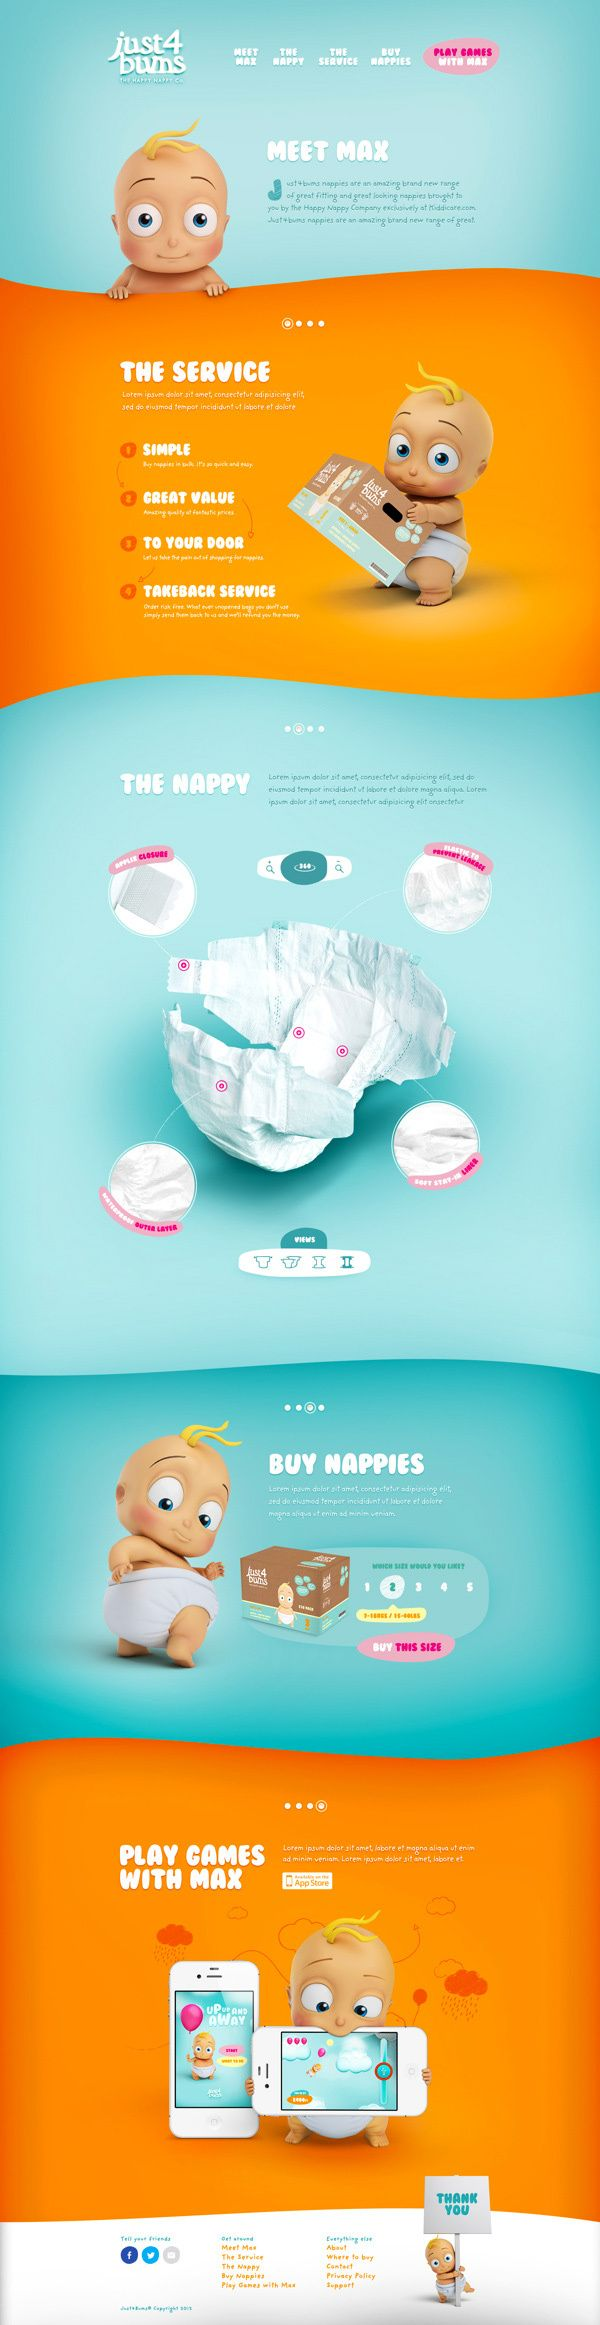 Just4Bums on Behance